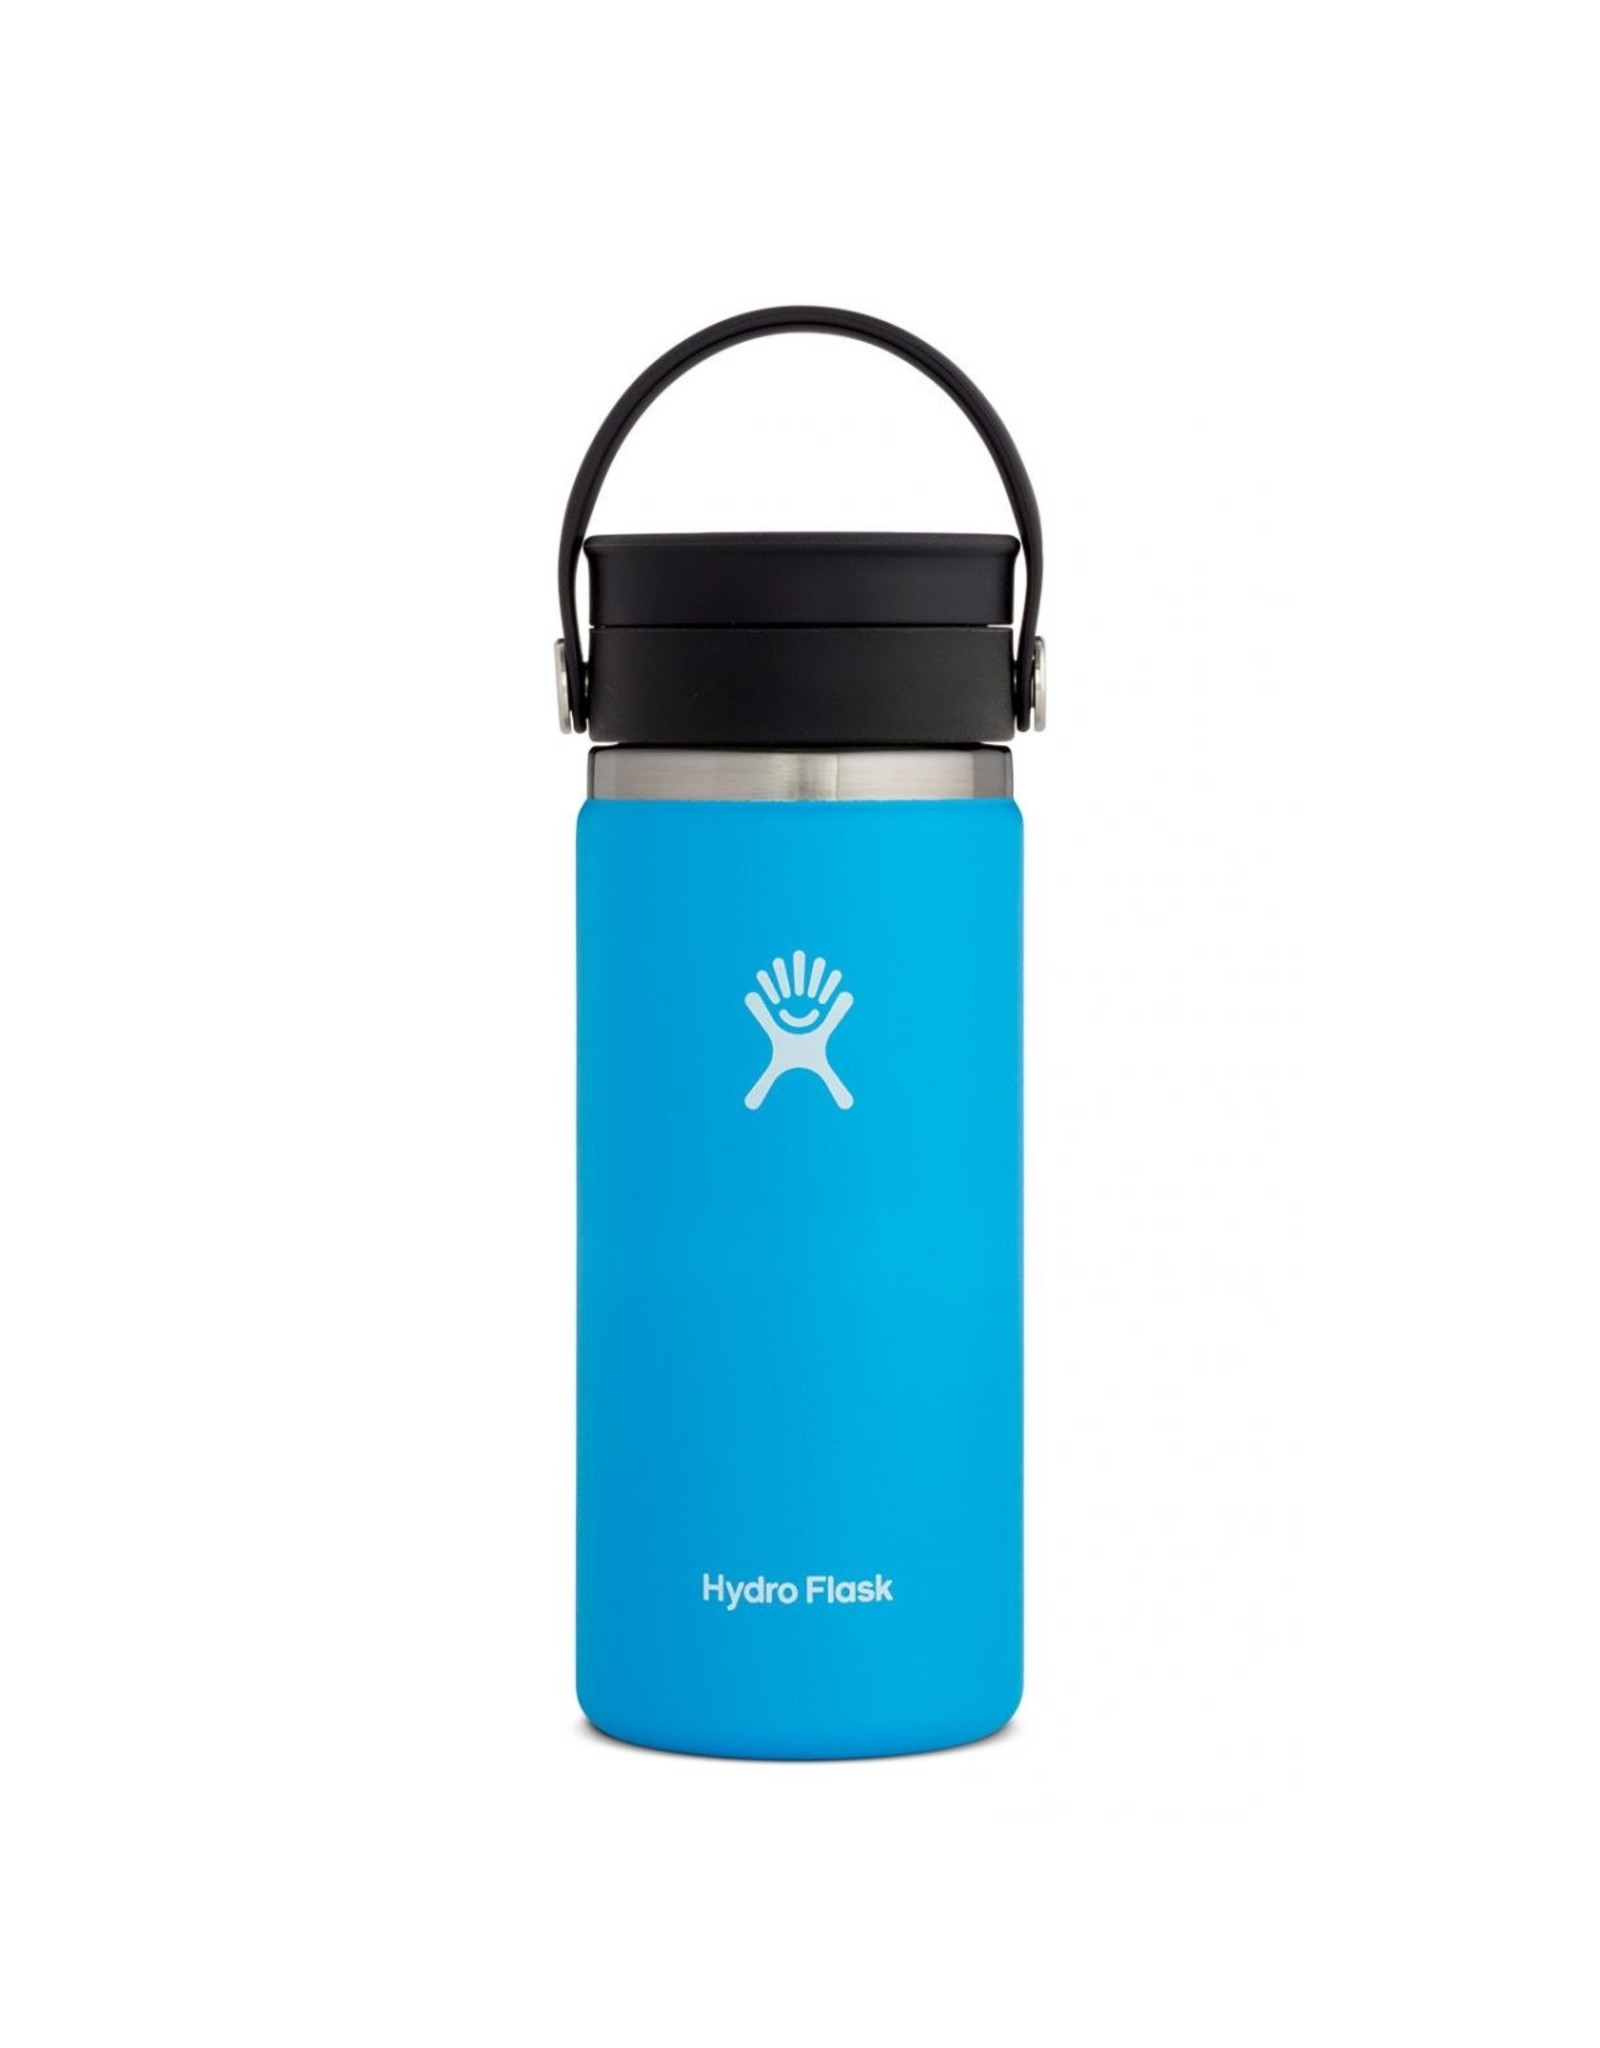 Hydro Flask Hydro Flask 16oz Wide Mouth Flex Sip Lid Pacific